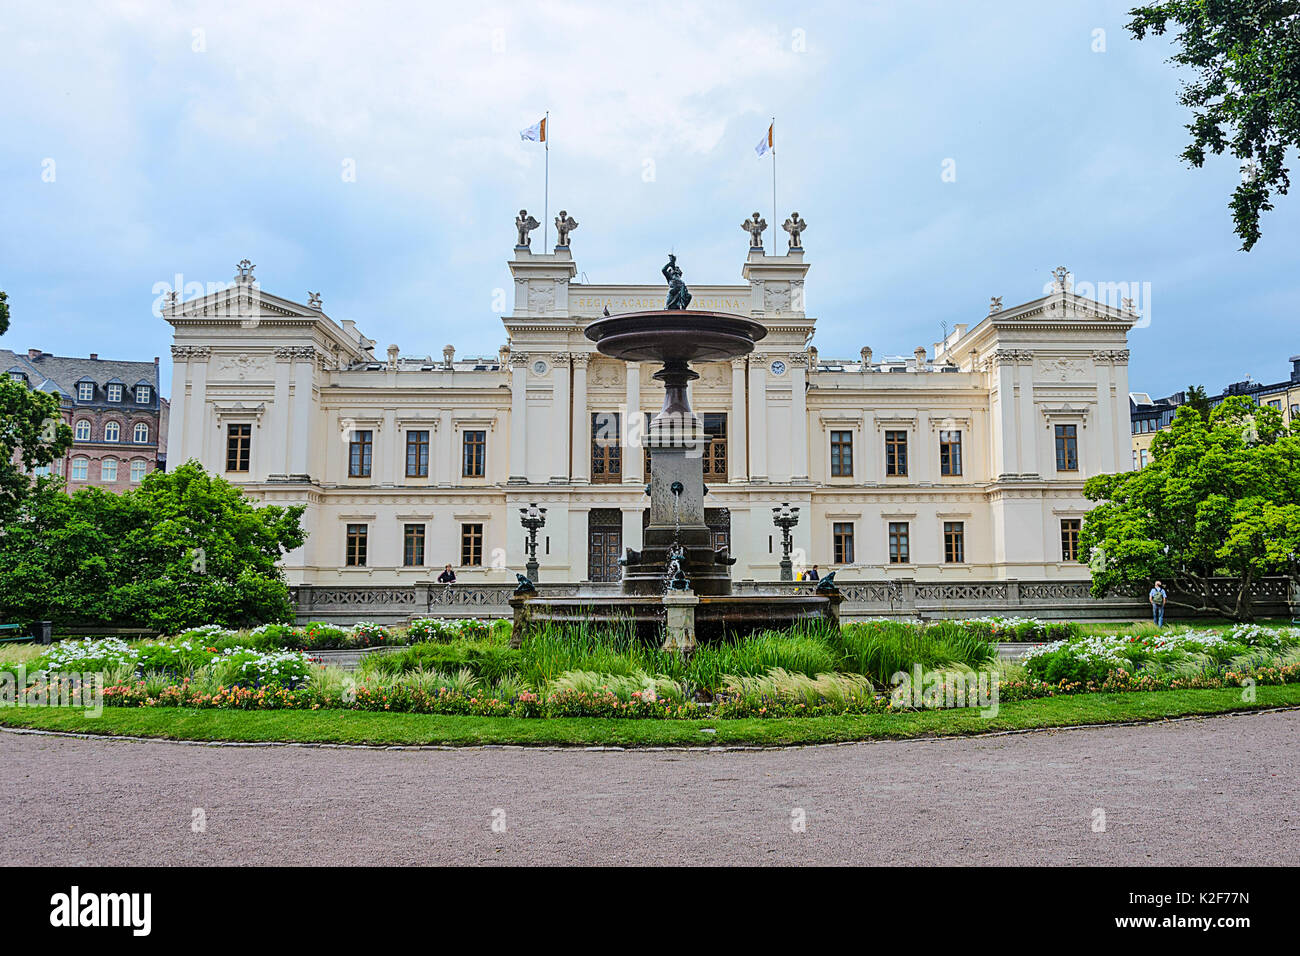 Lund, Sweden, July 23, 2017: Lund University is one of Europe's oldest, largest and most prestigious universities and is located in the city of Lund i - Stock Image